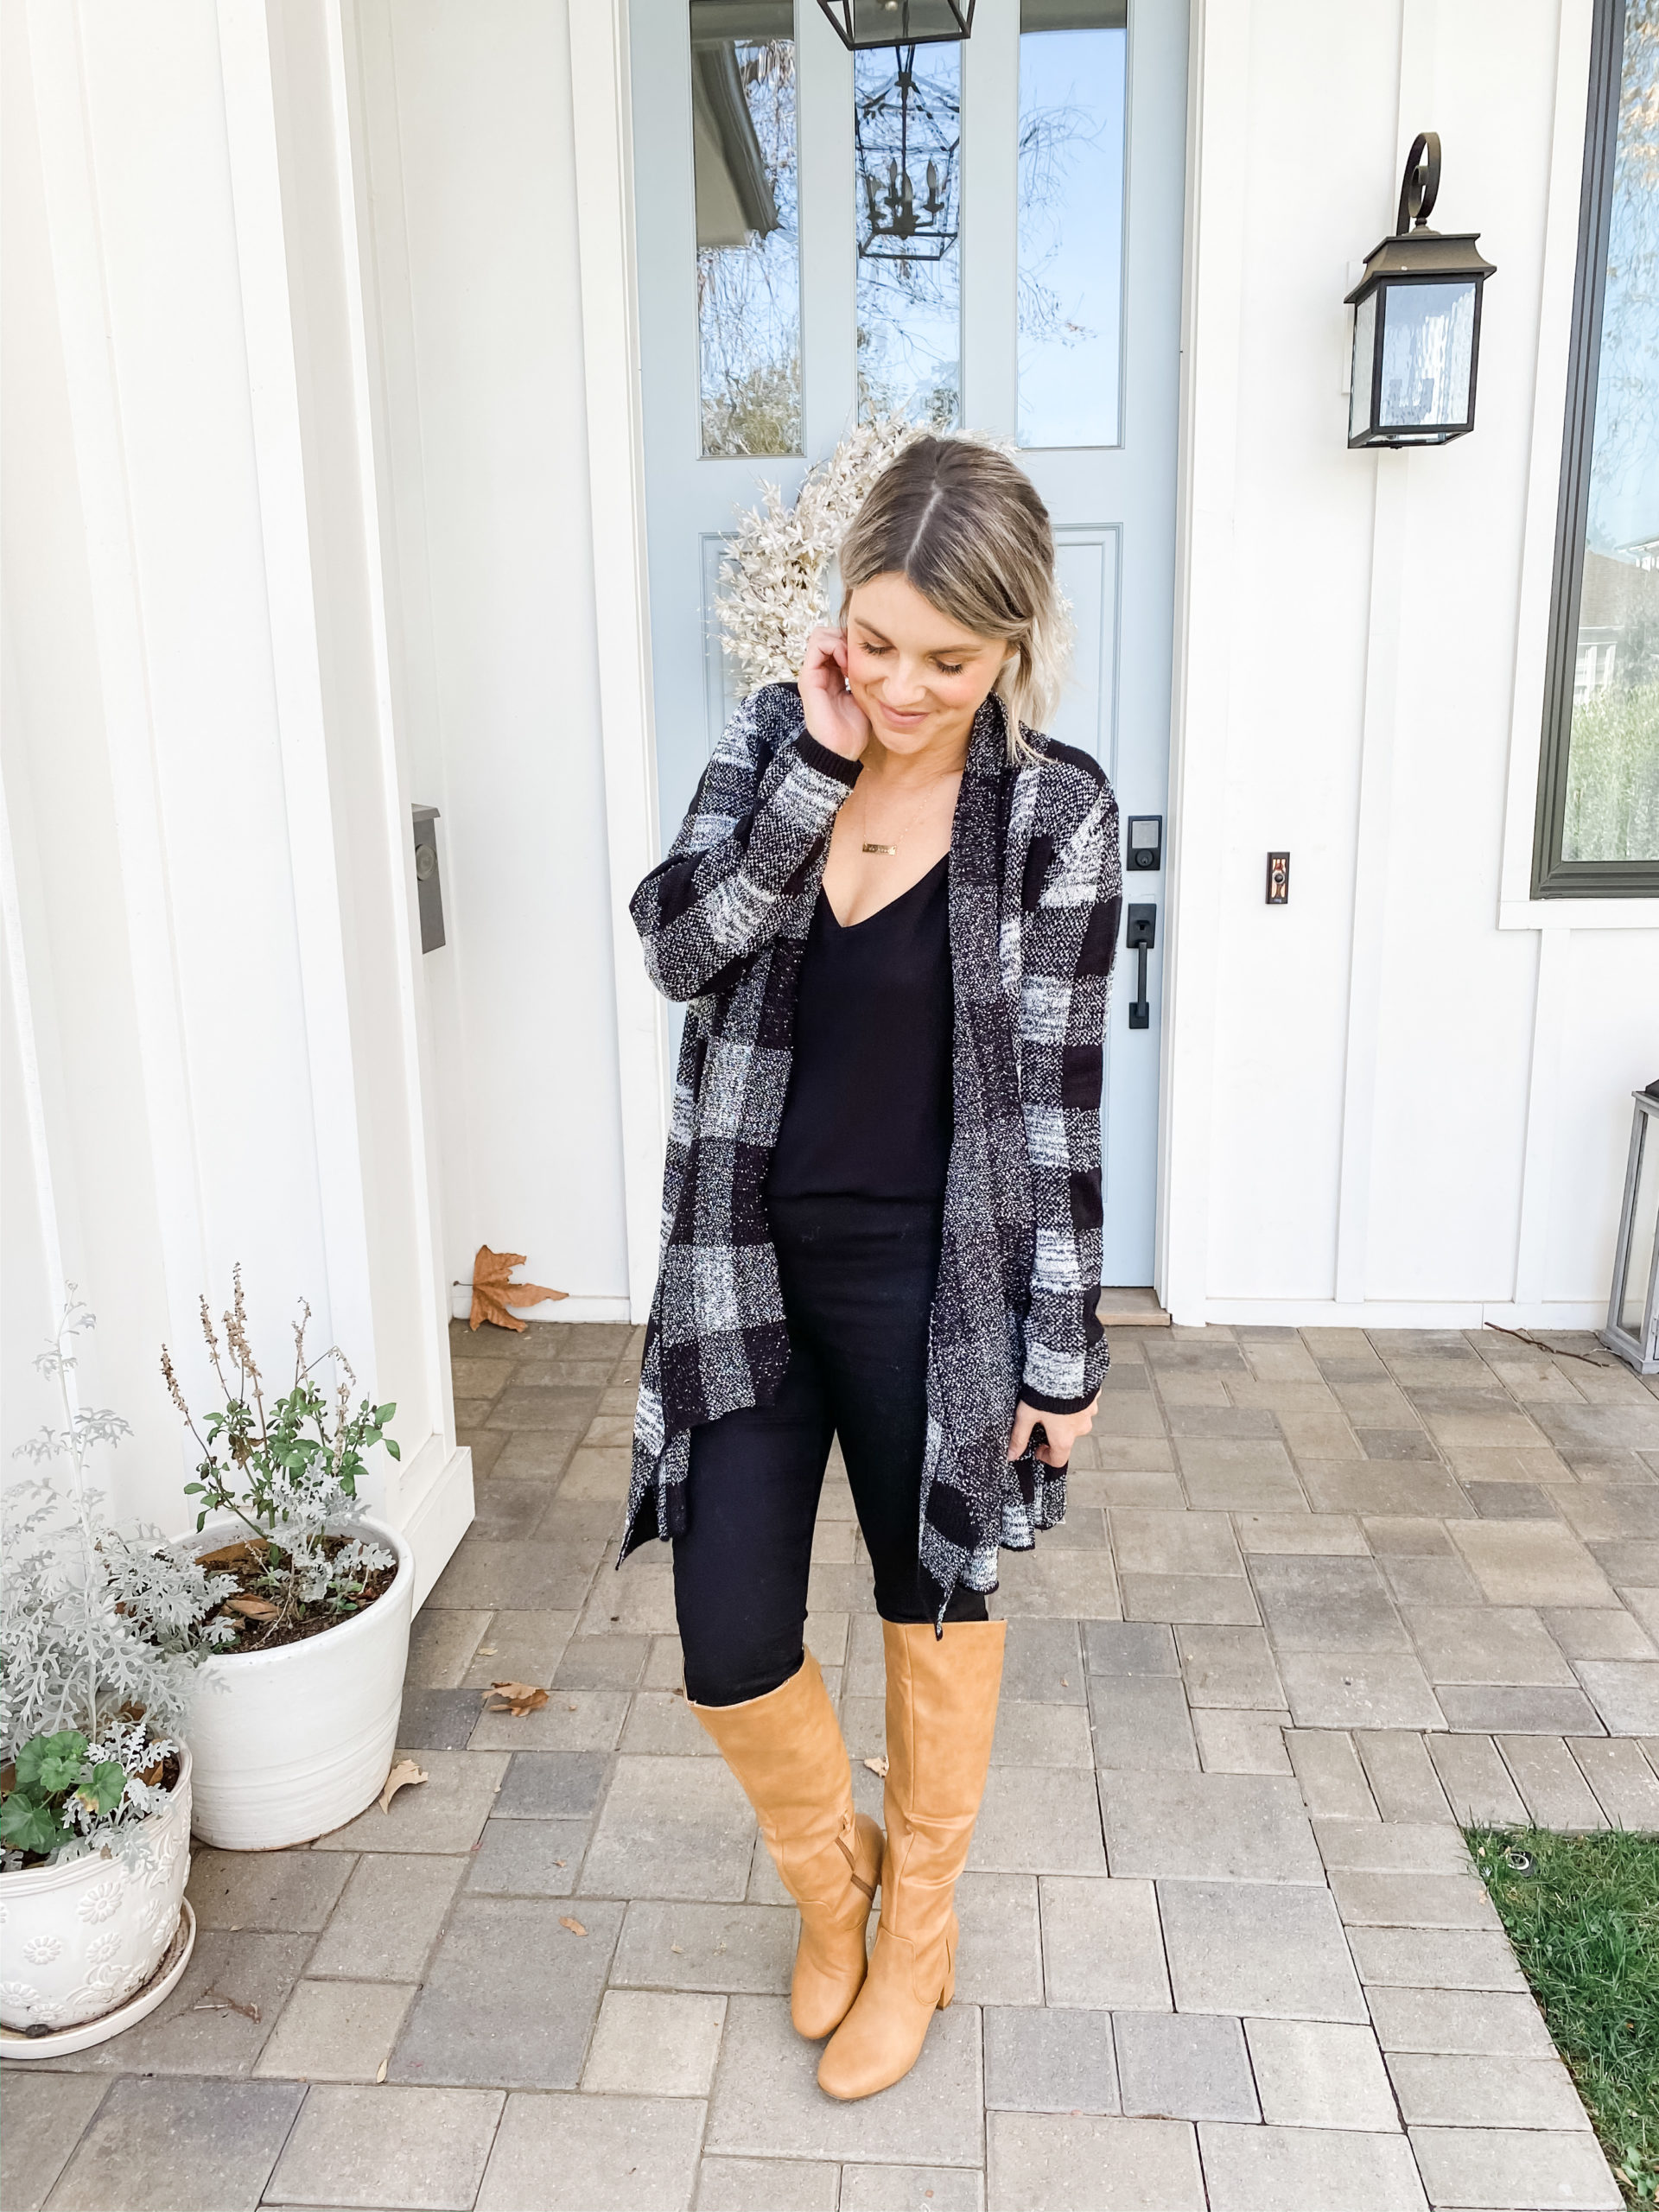 CHECKERED SWEATER 3 sweaters under $25